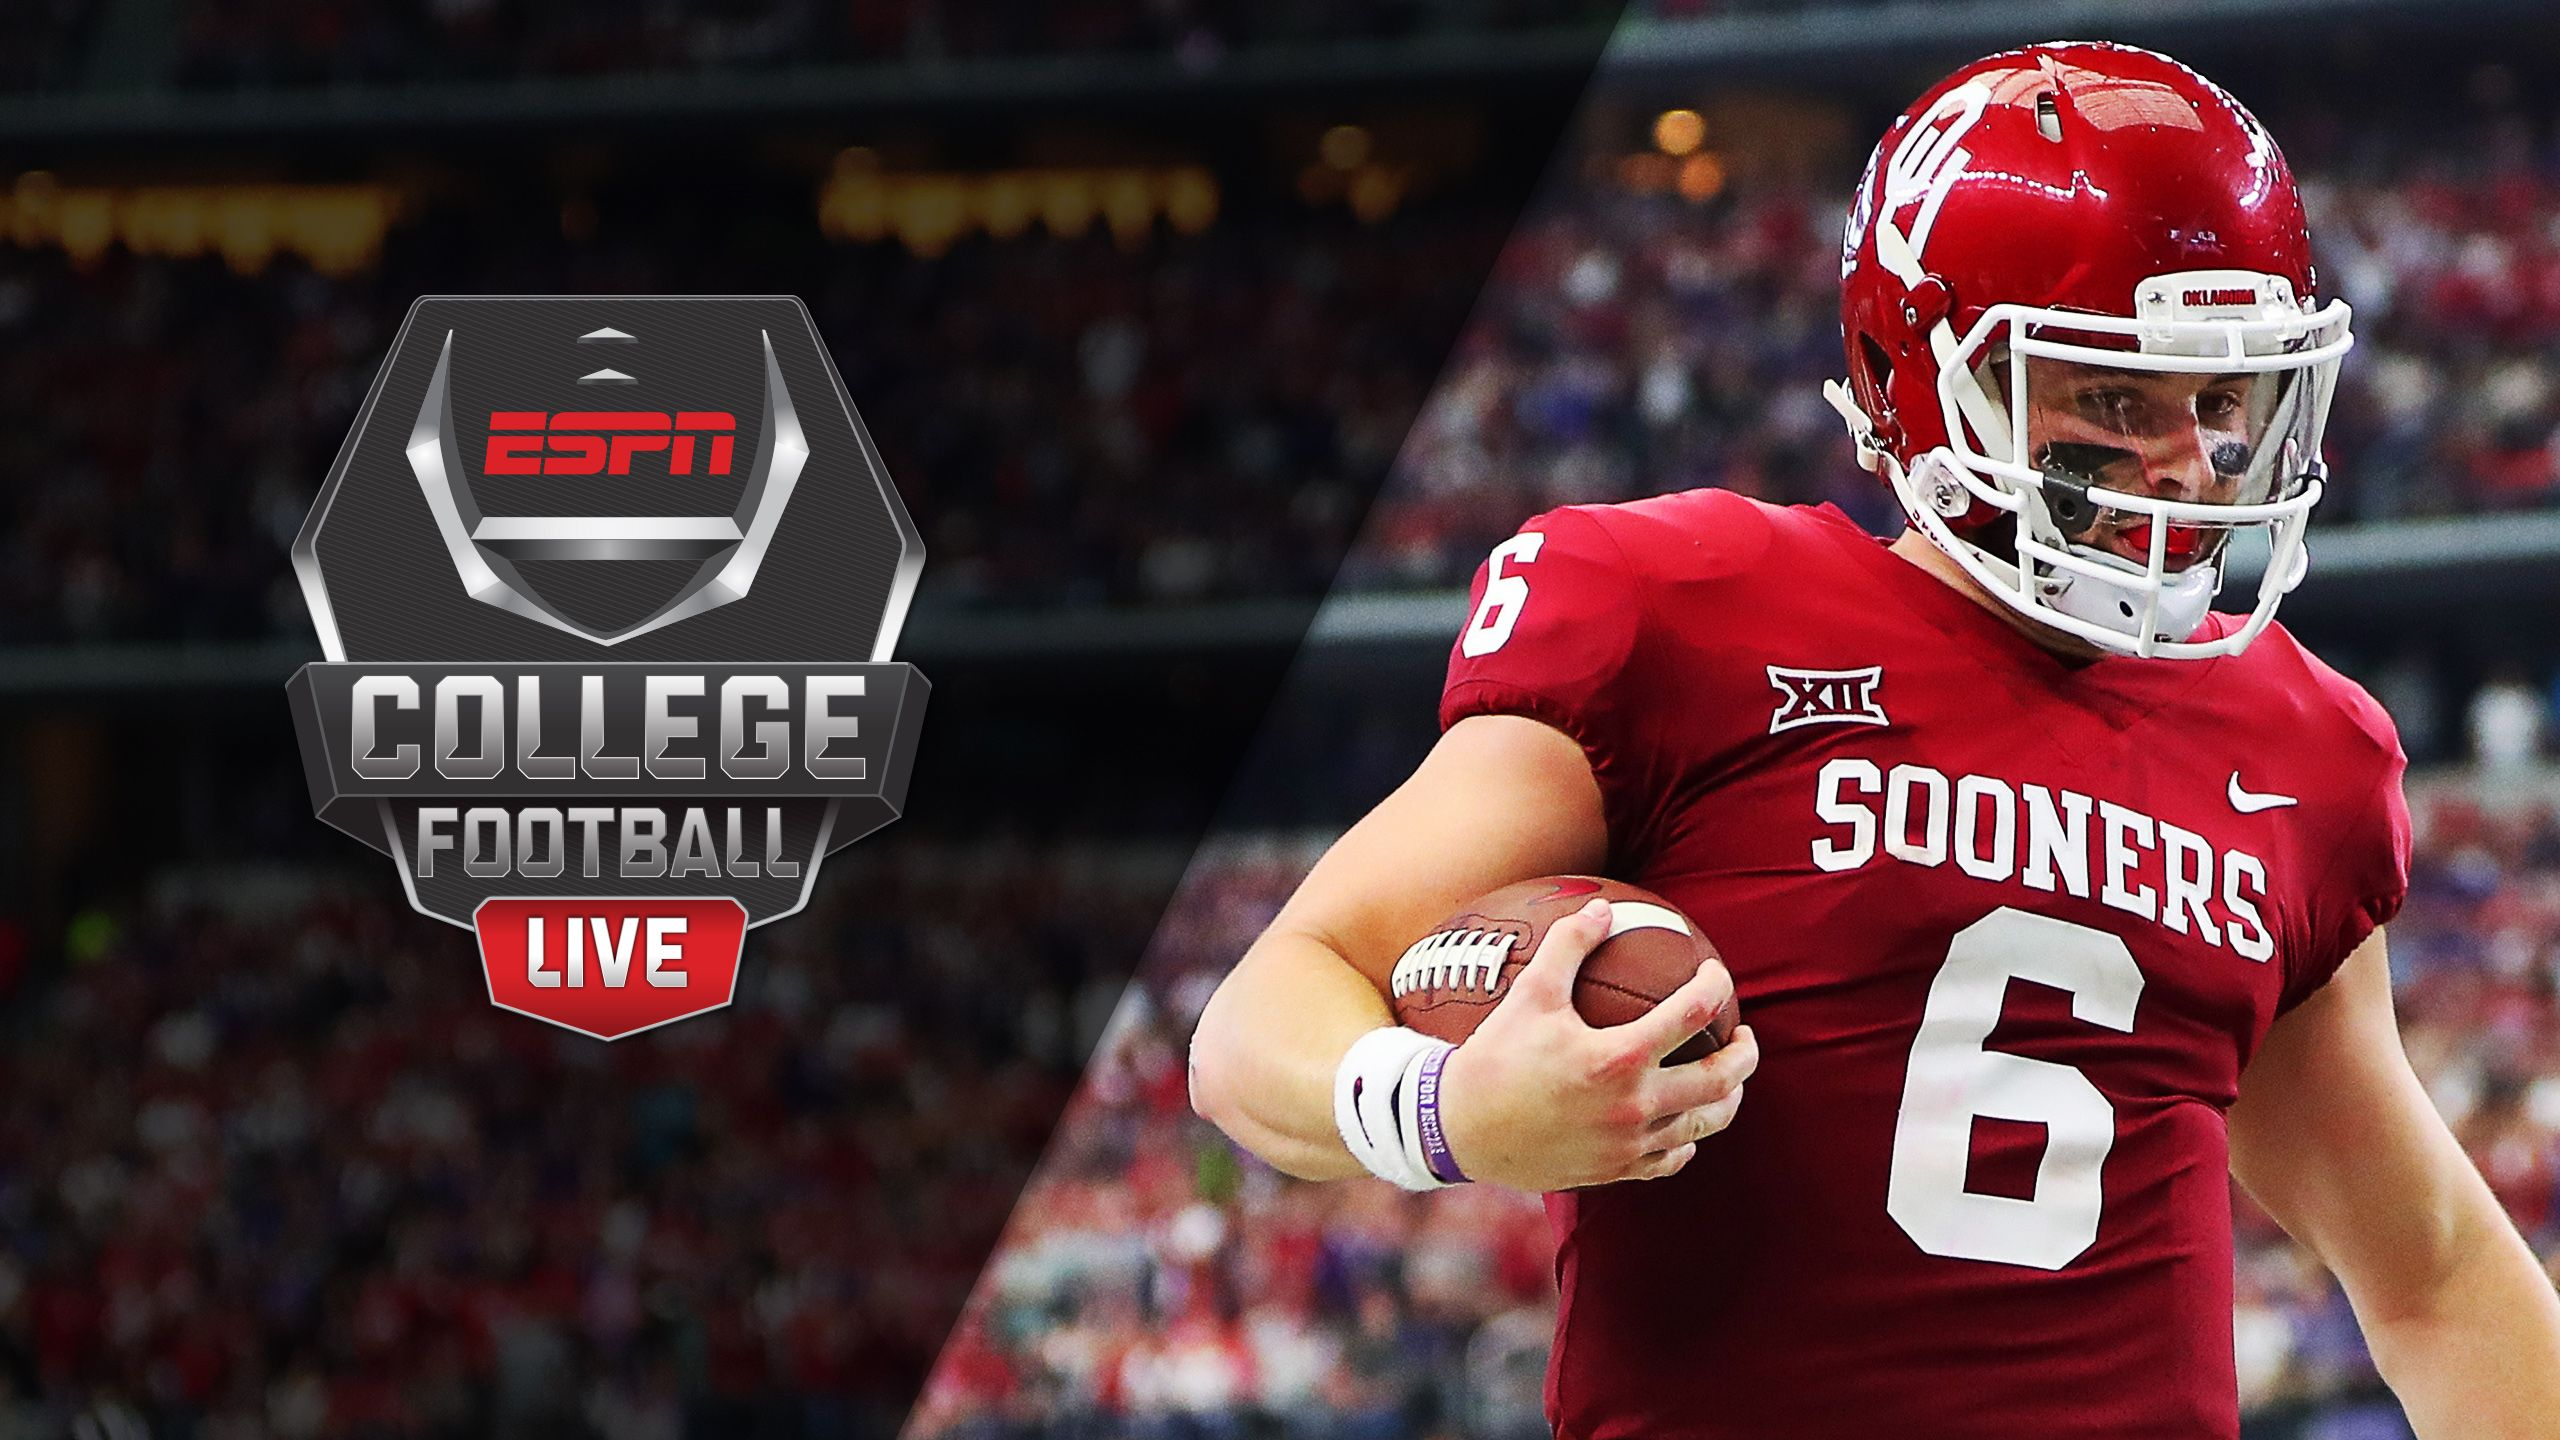 Fri, 12/8 - College Football Live: Weekend Tailgate Presented by Wrangler